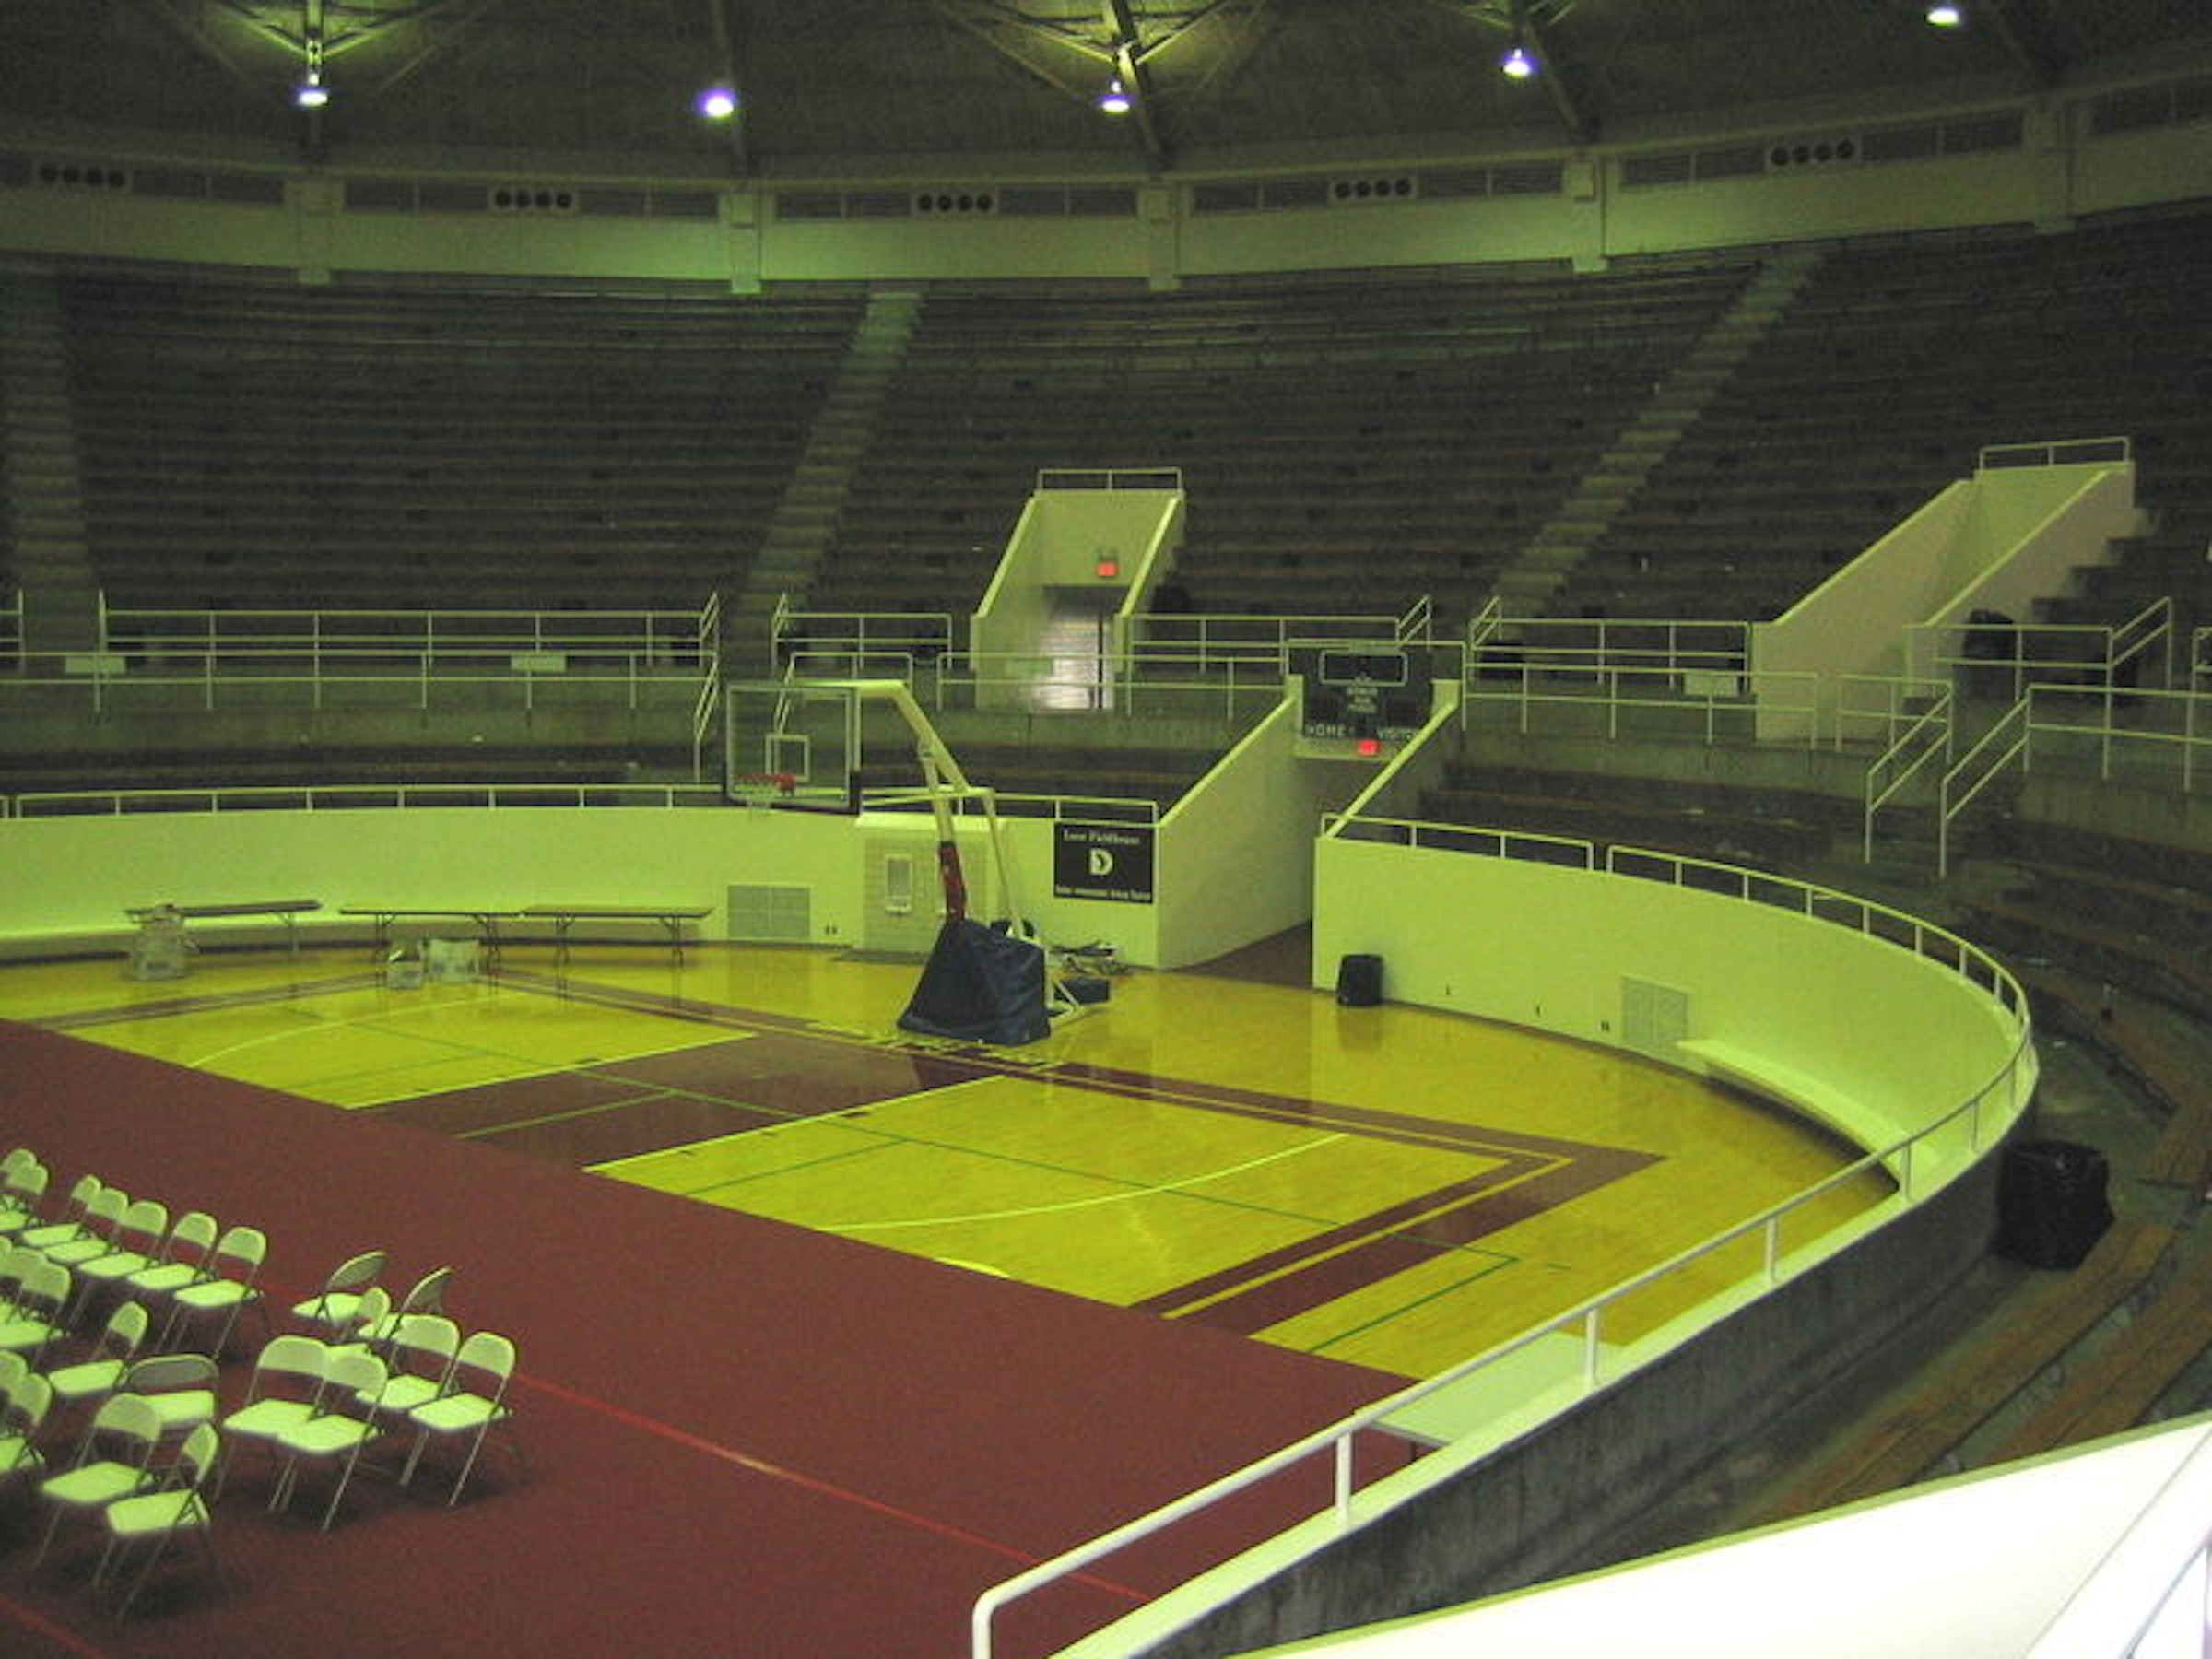 Alfred J. Loos Sports Complex in Beyond Dallas